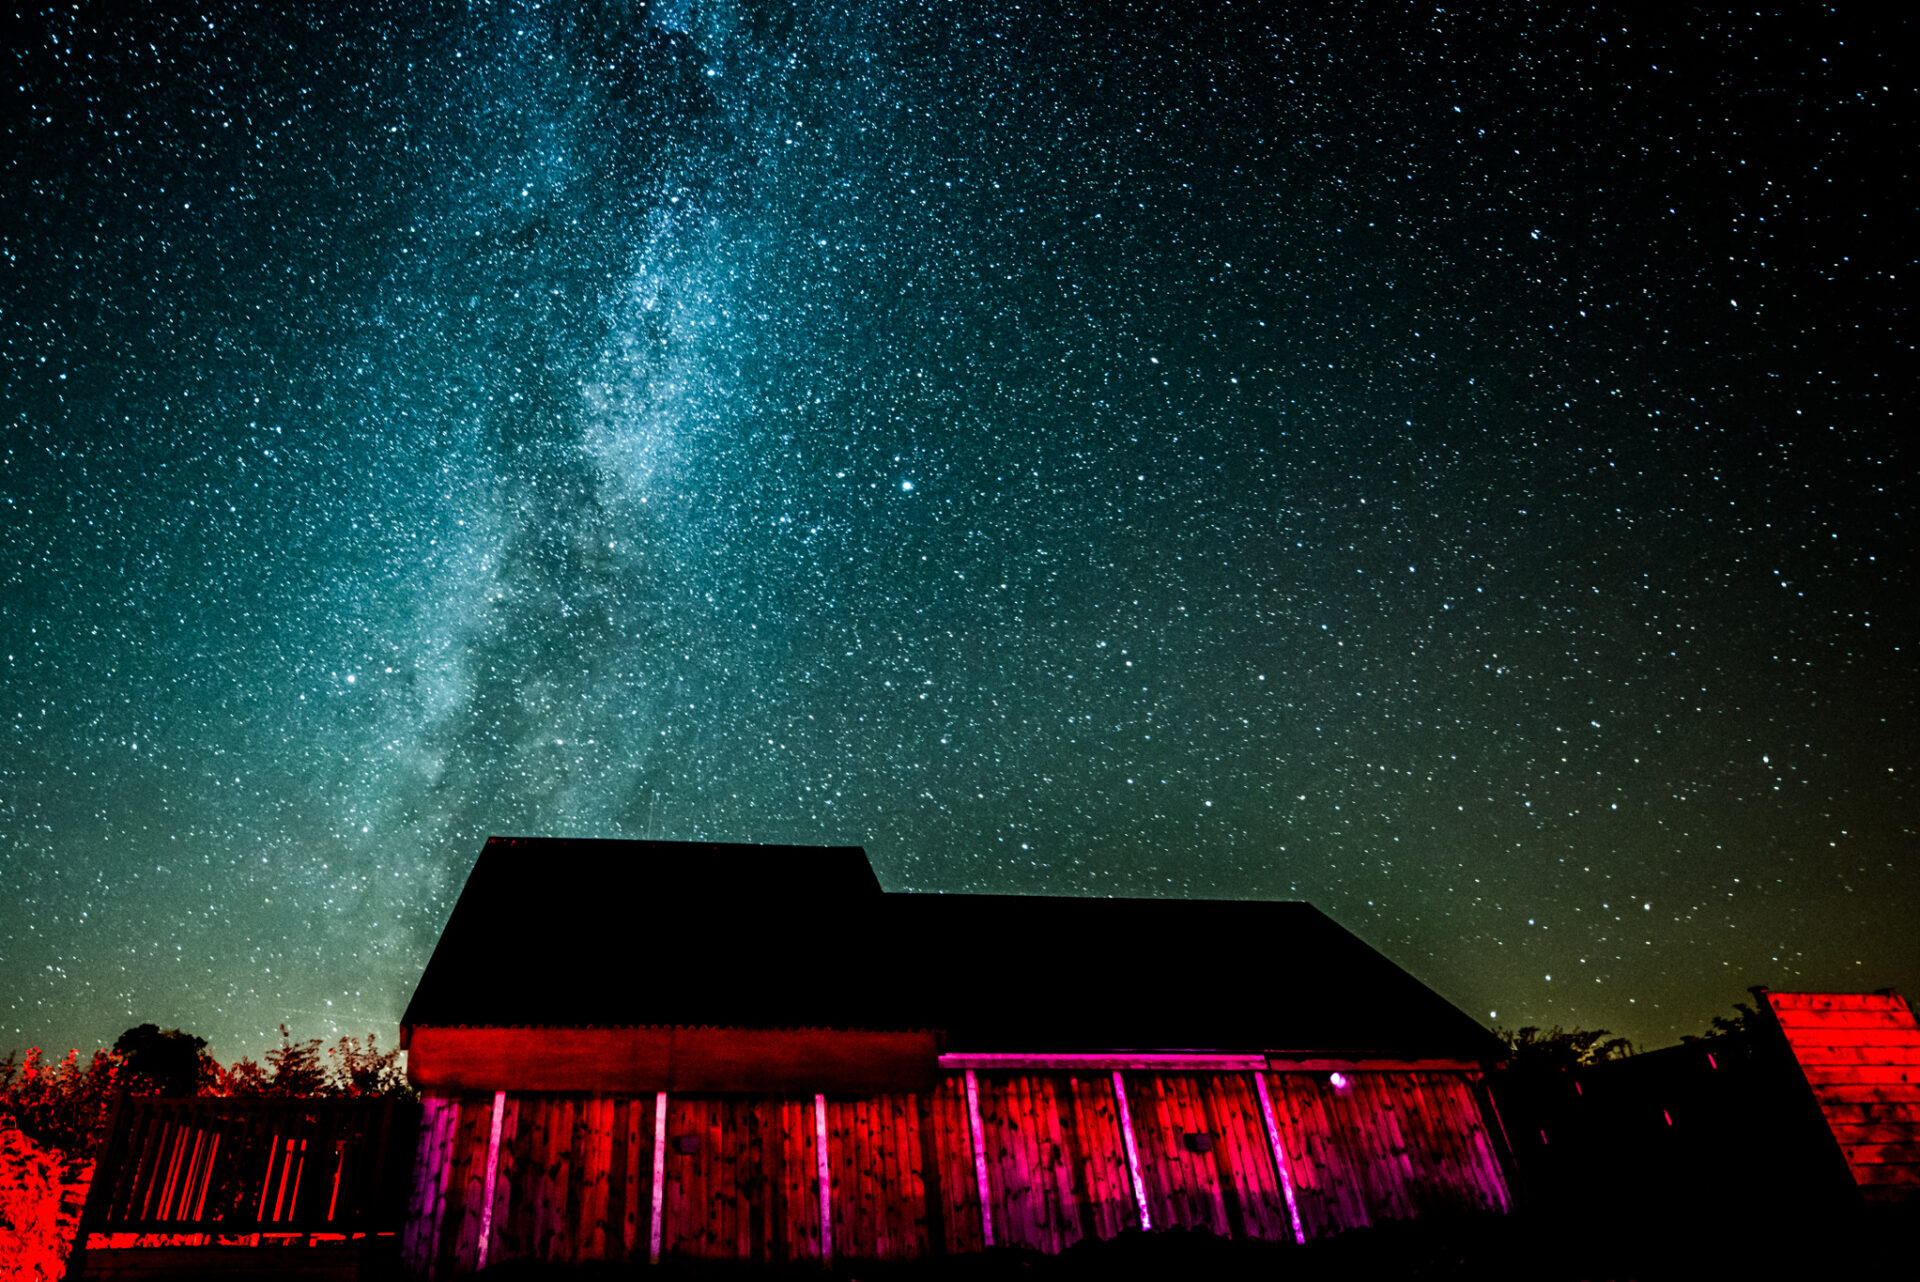 A night sky image of Battlesteads Observatory and the Milky Way